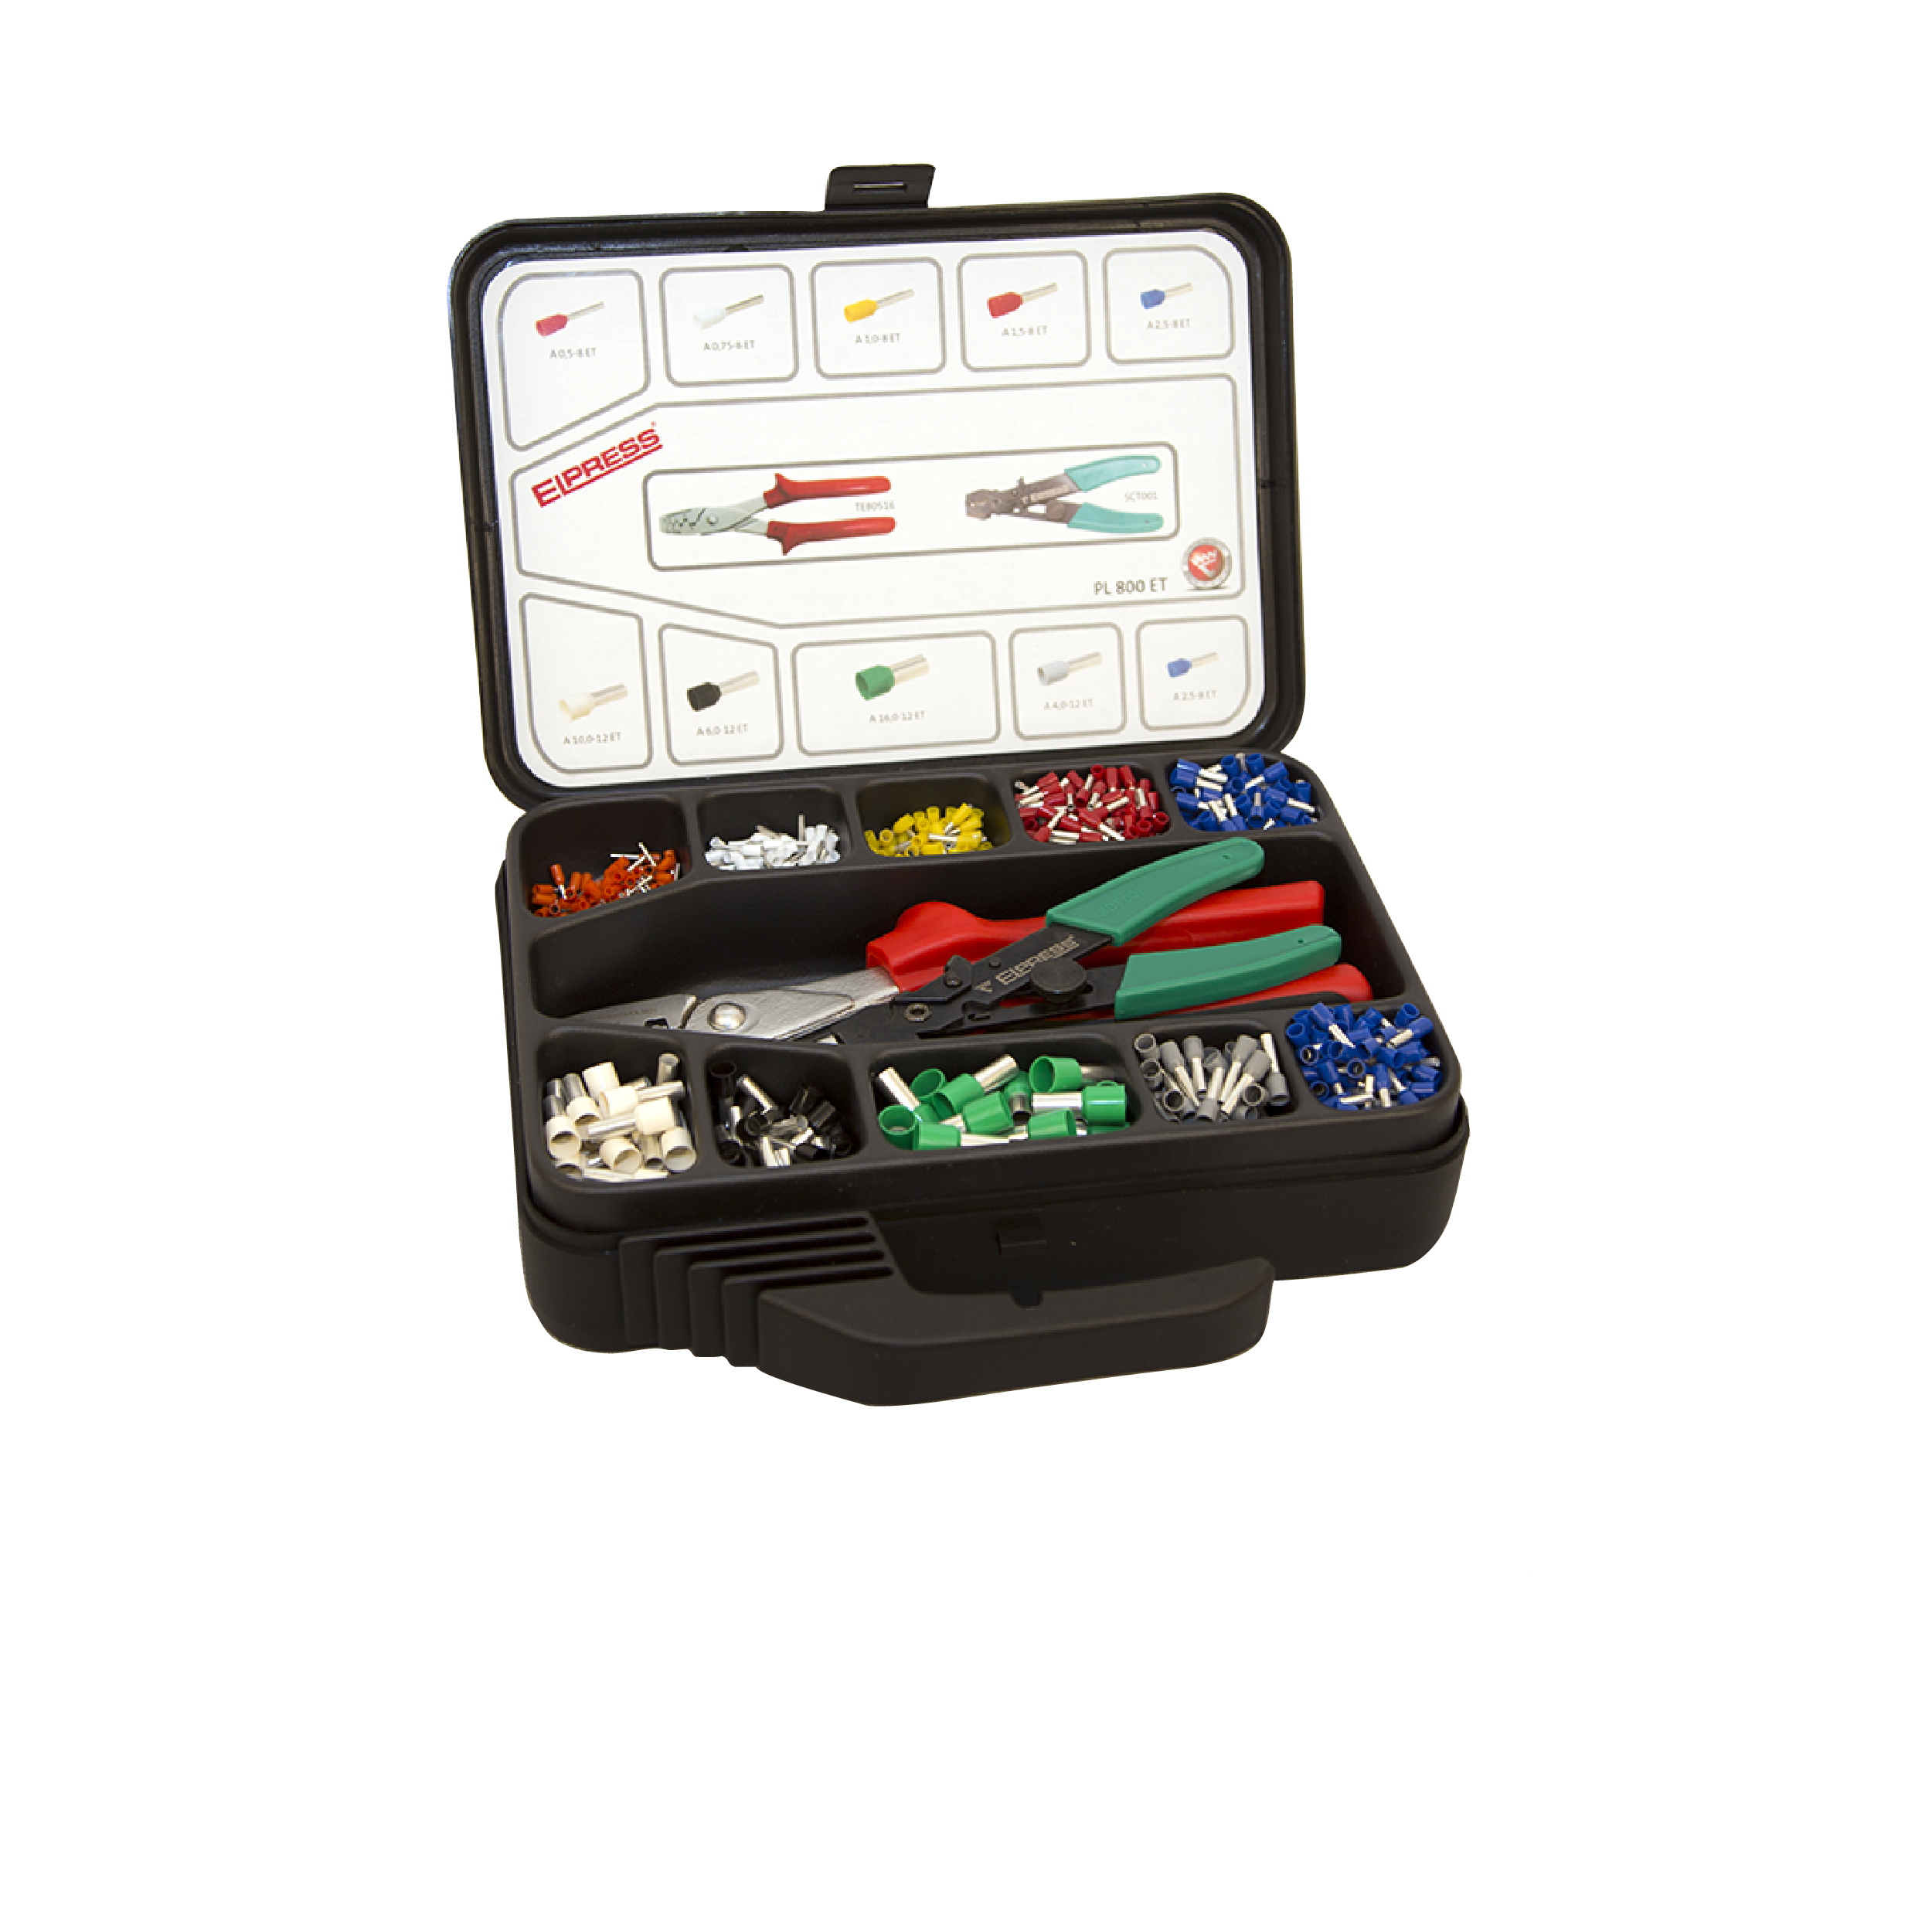 Elpress PL800ET Assortment Box